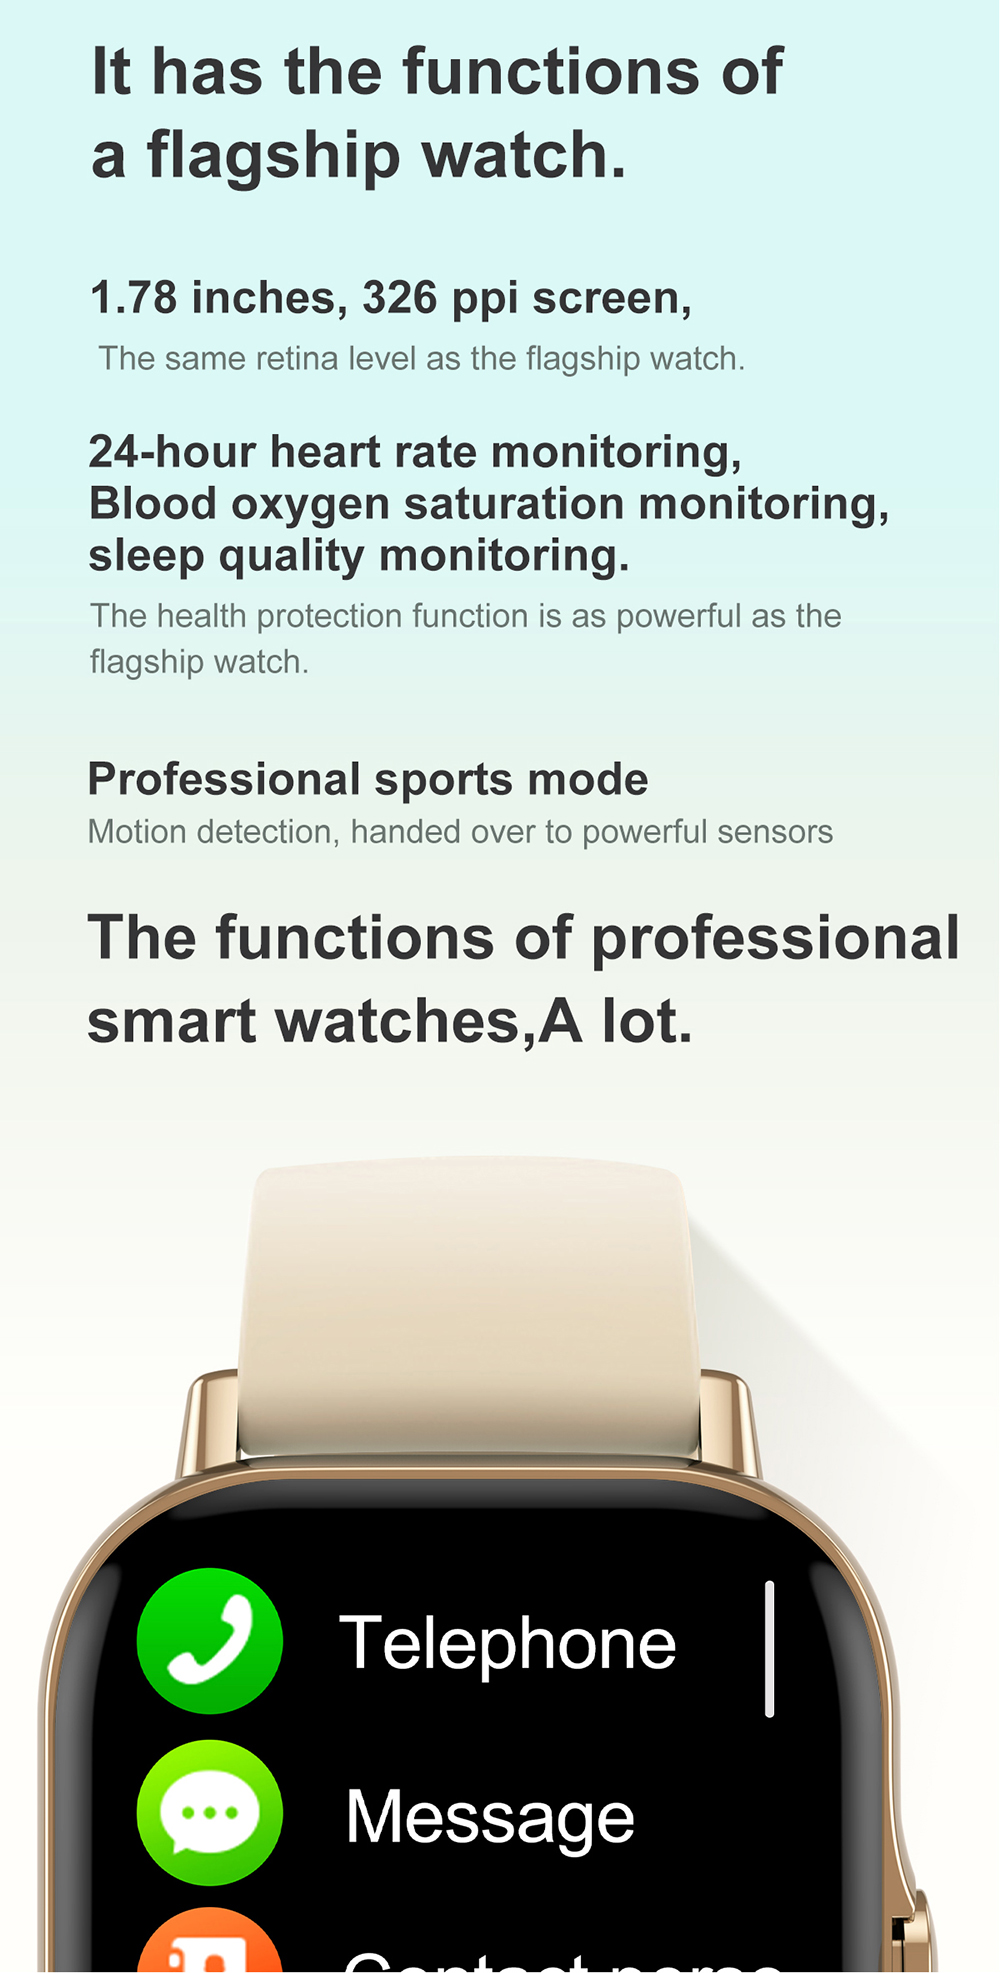 Hf0210fff0f63435dbf441816fa67f7f5H For Xiaomi IOS Apple Phone 1.78inch Smart Watch Android Men IP68 Waterproof Full Touch Woman Smartwatch Women 2021 Answer Call